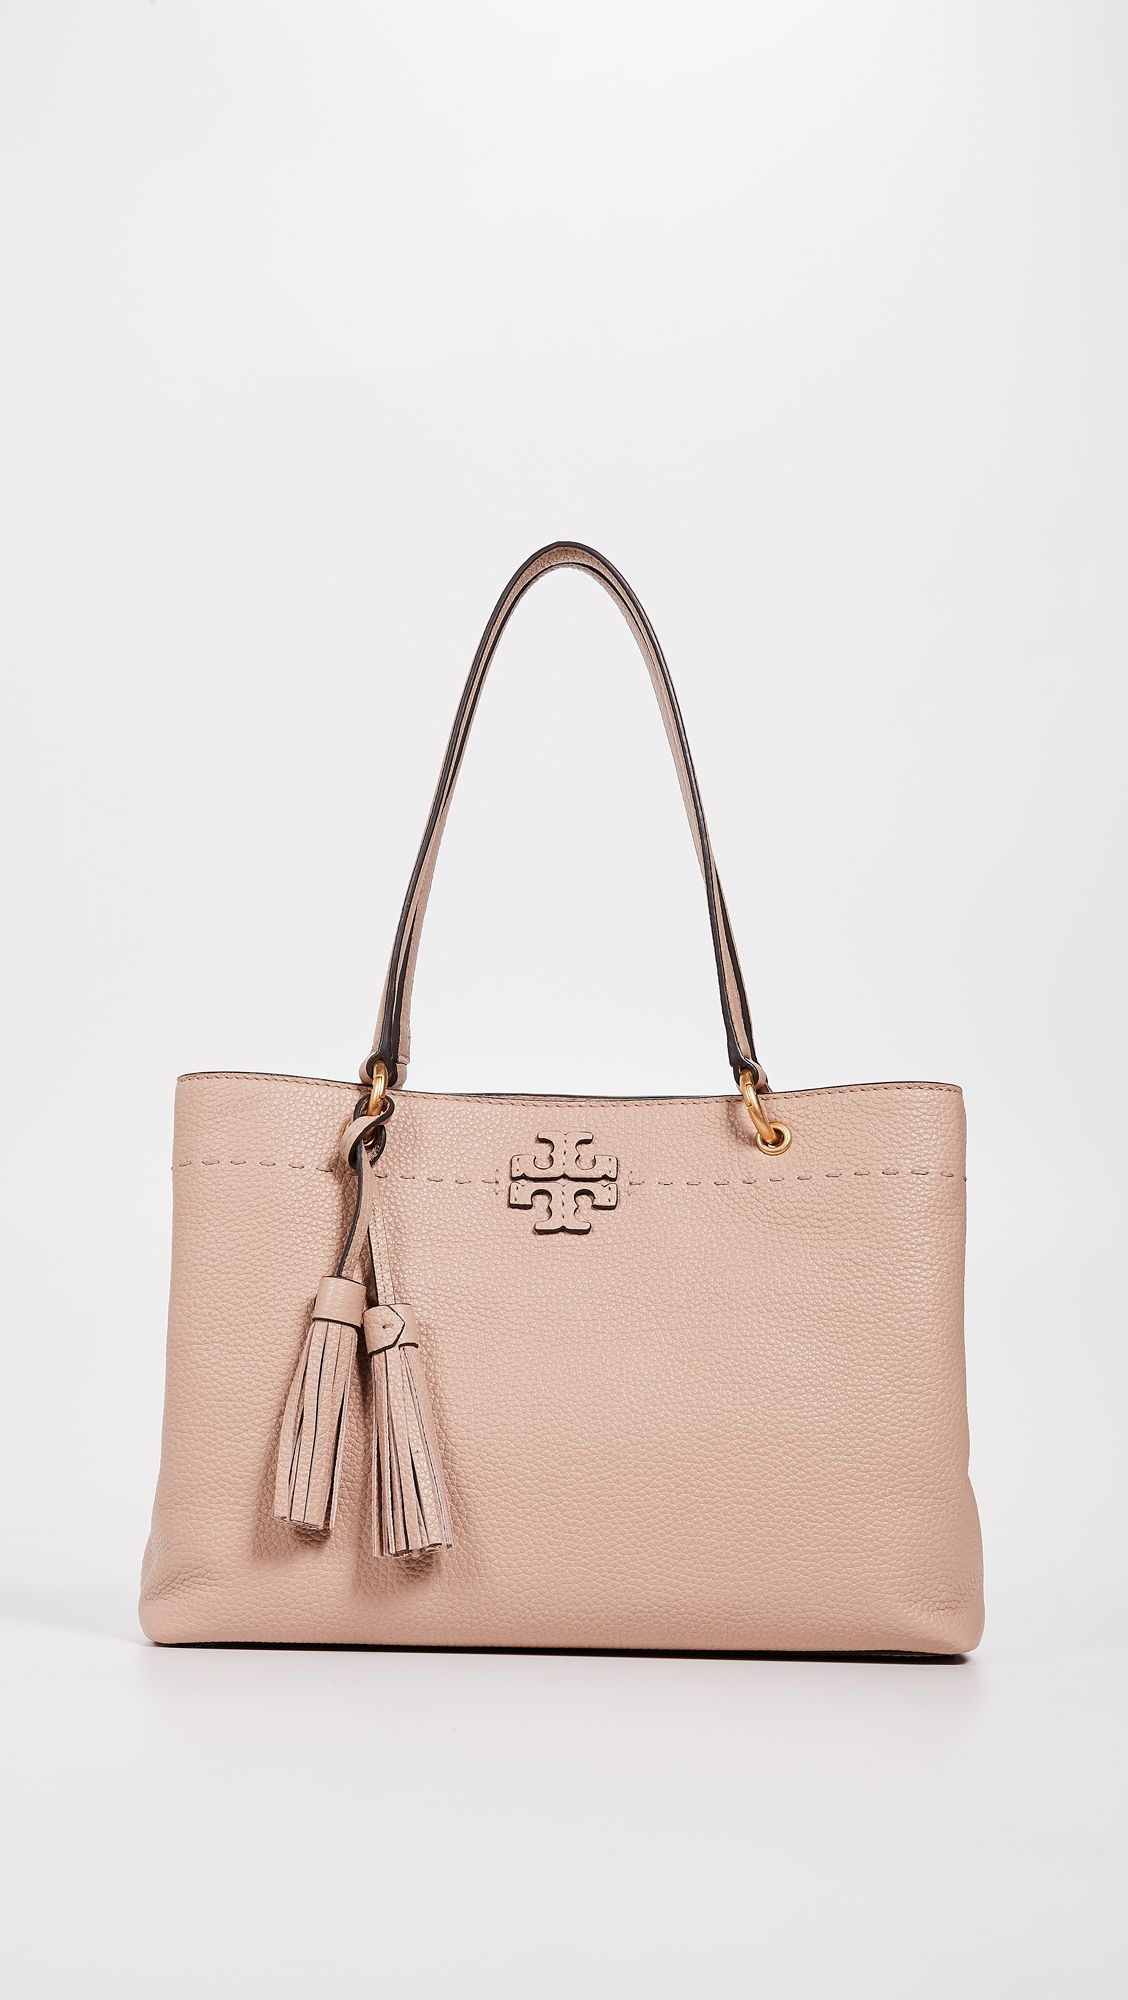 7b3c5c760bc Tory Burch Mcgraw Triple-Compartment Tote   Products   Tory burch ...